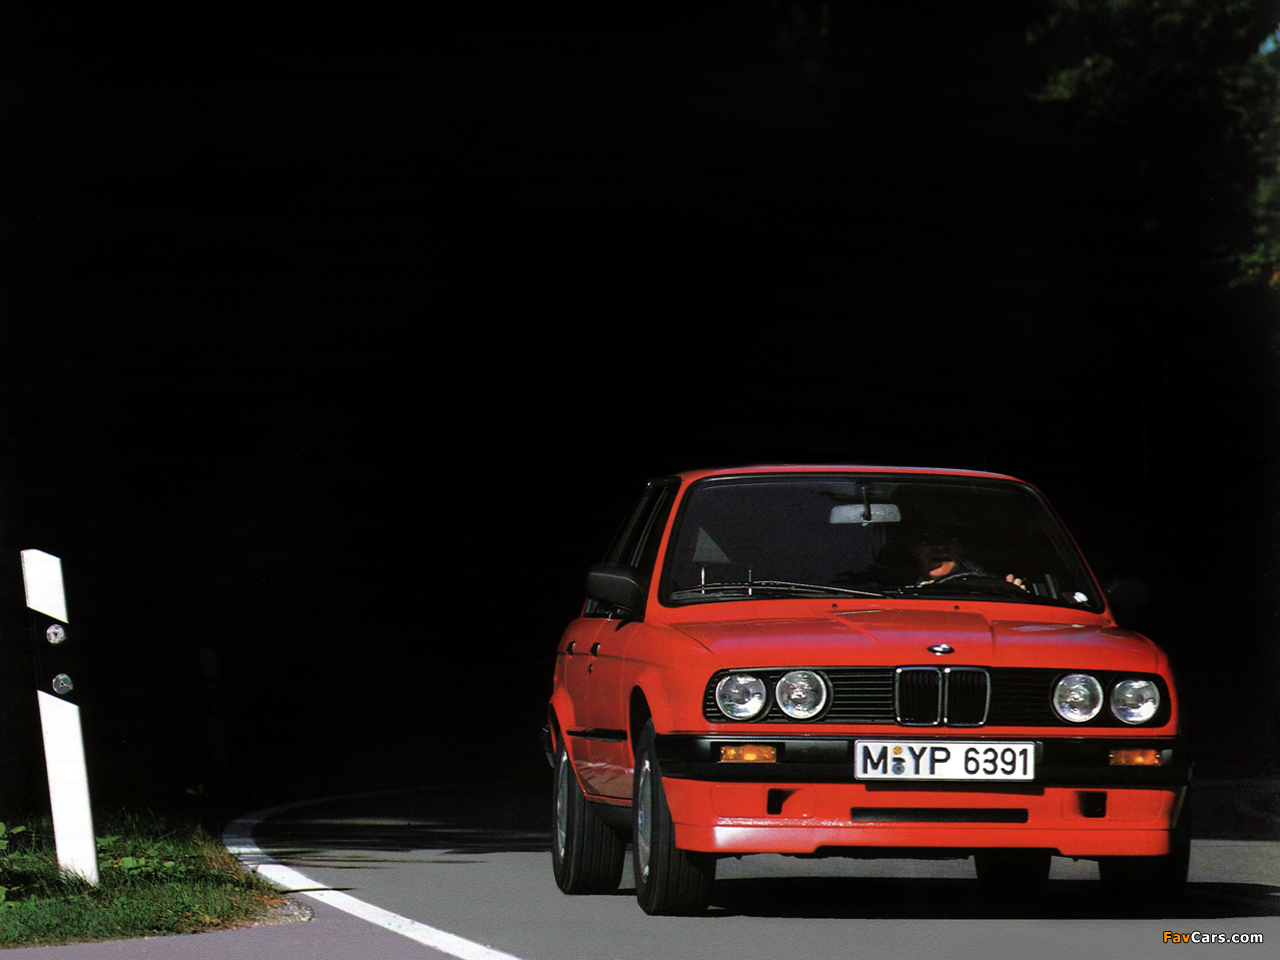 Bmw e Wallpapers Archives Page of HD Desktop Wallpapers ×